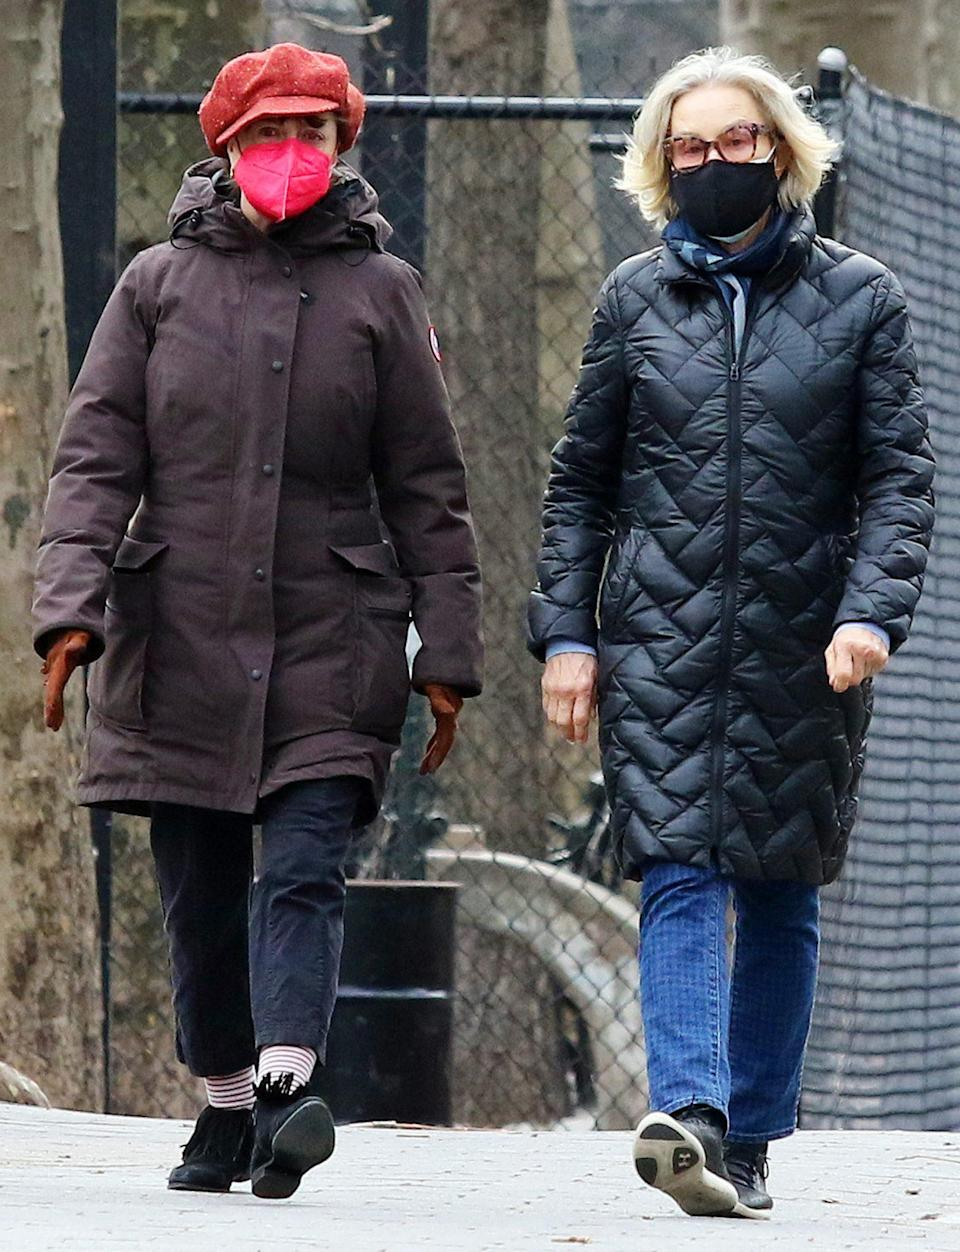 """<p>Jessica Lange and Susan Sarandon take a long walk through N.Y.C.'s East Village on Friday. <a href=""""https://people.com/movies/susan-sarandon-jessica-lange-give-back-stroll-through-nyc/"""" rel=""""nofollow noopener"""" target=""""_blank"""" data-ylk=""""slk:The two were spotted"""" class=""""link rapid-noclick-resp"""">The two were spotted</a> taking the time to give money to a man, and helping an older woman with a cane into her wheelchair.</p>"""